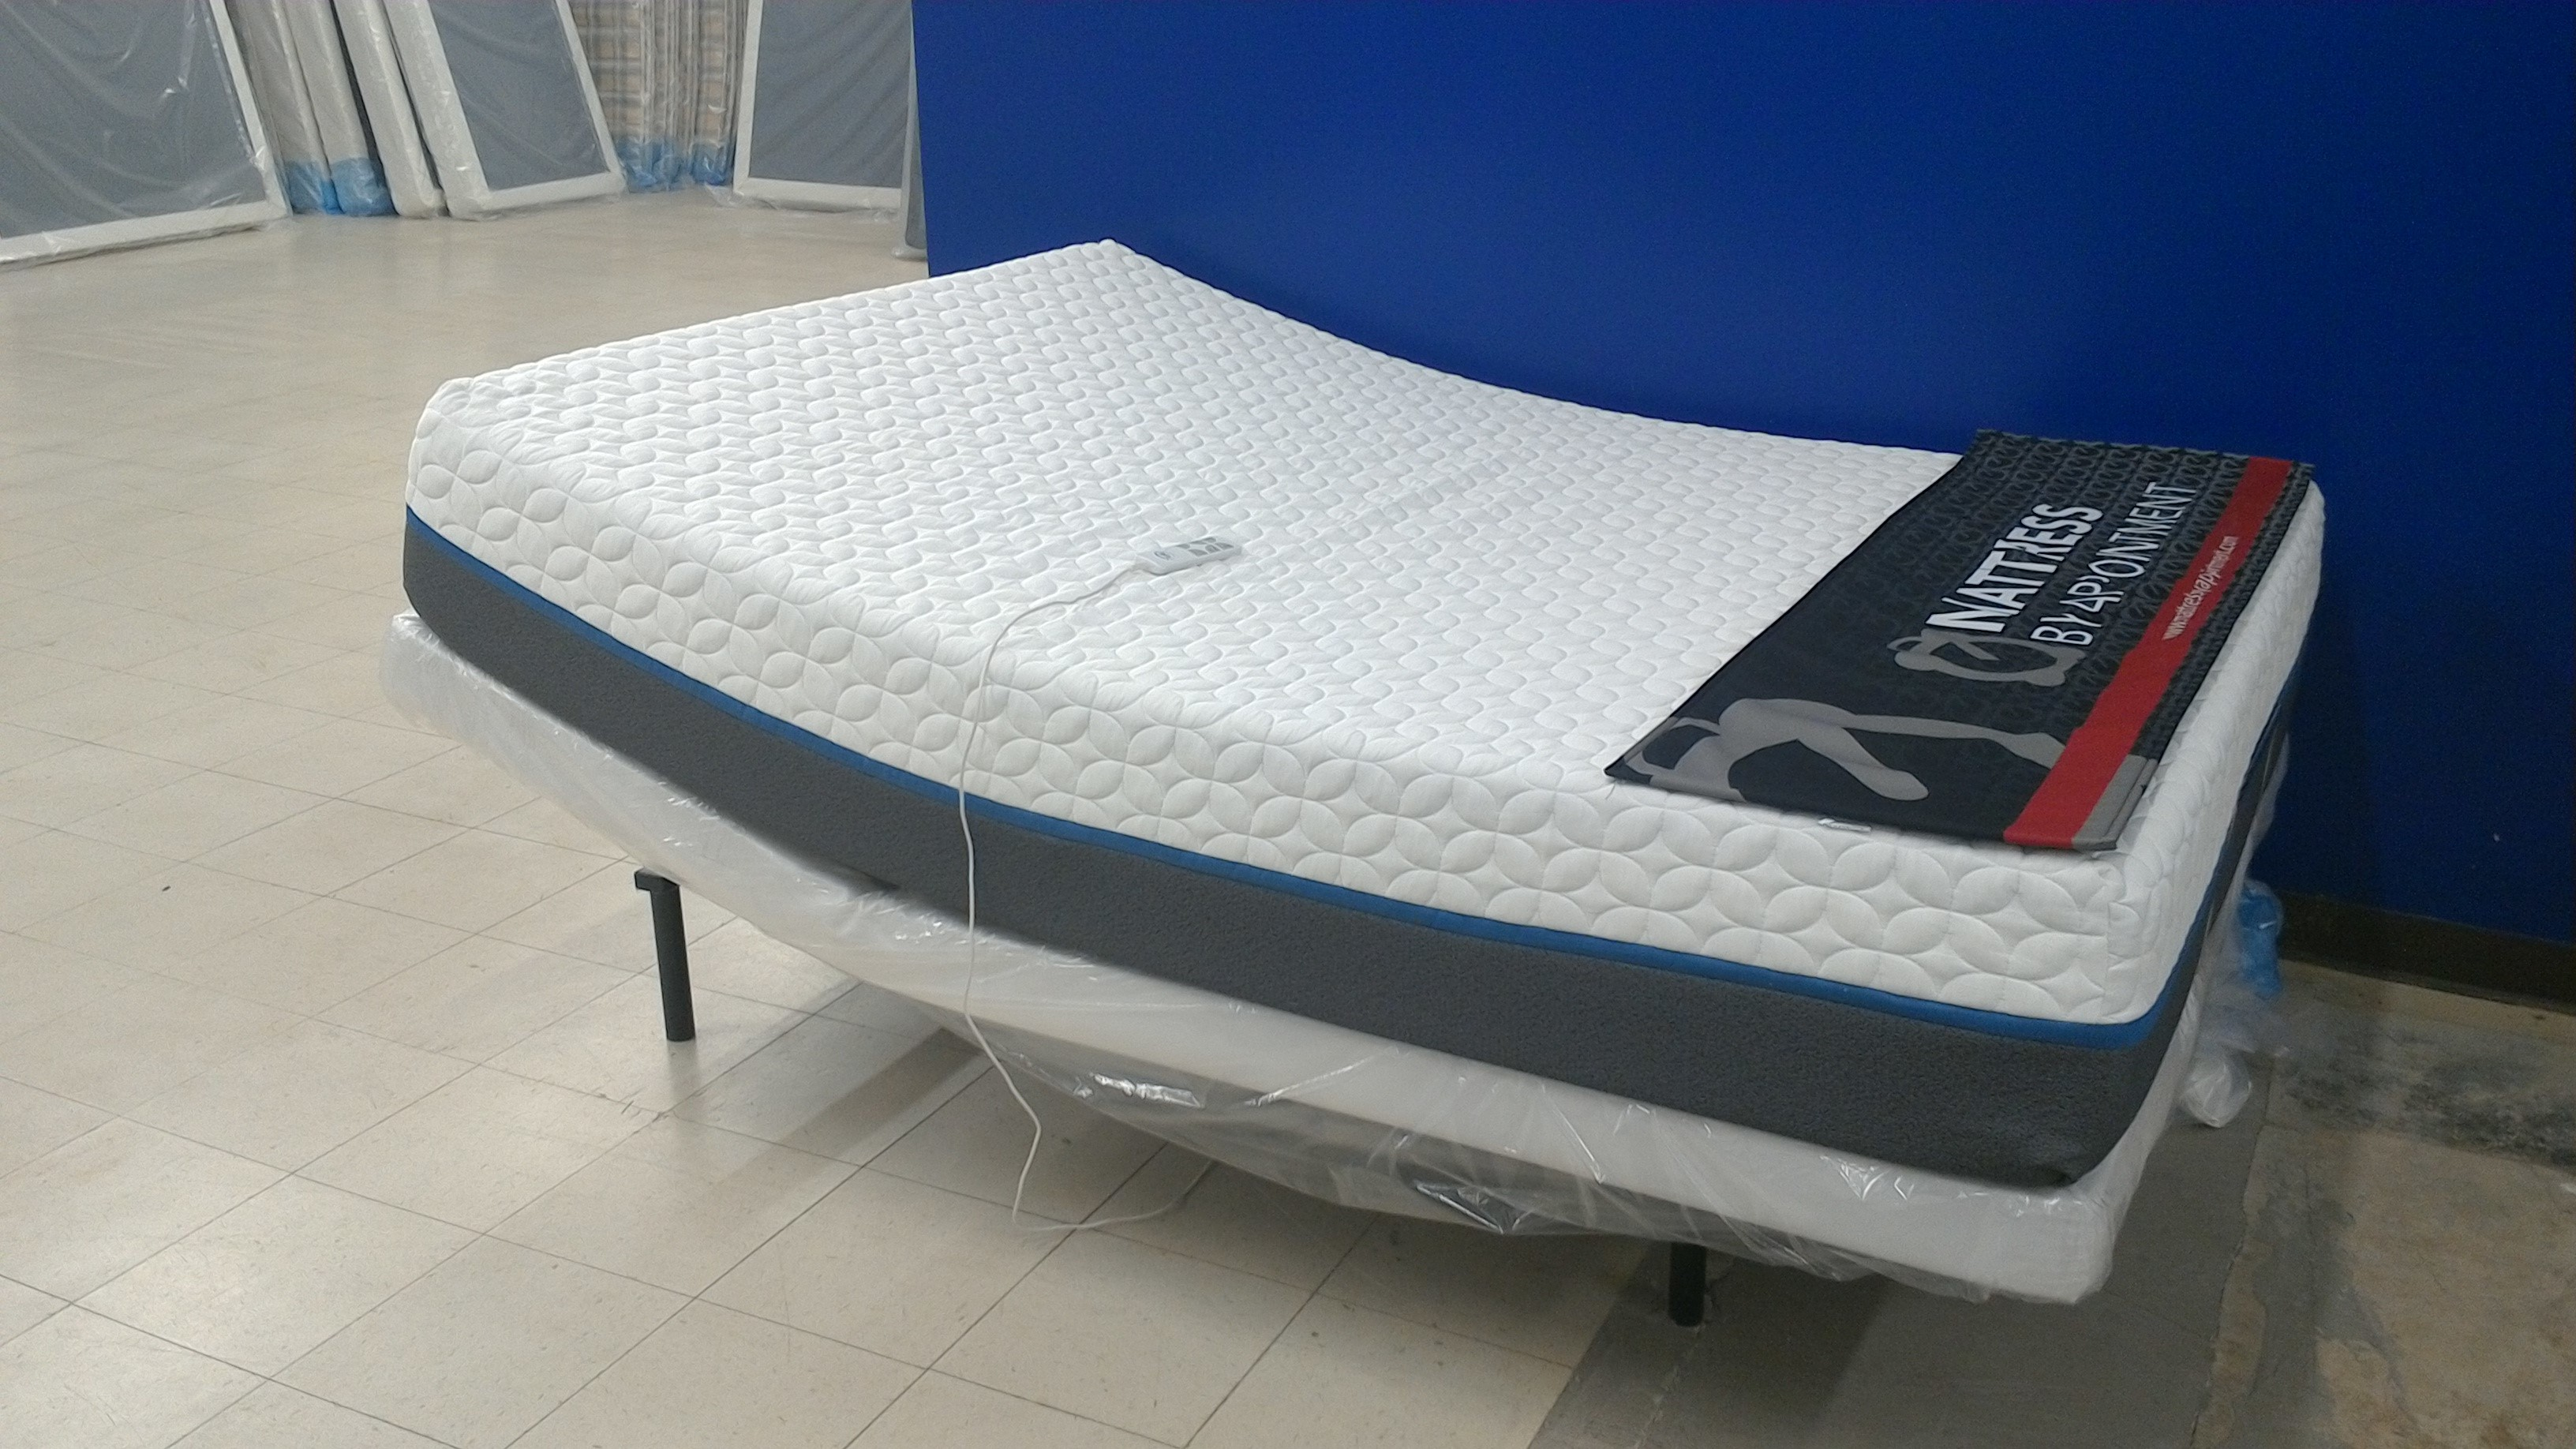 adjustable beds in lexingtonwest columbia sale mattress by appointment - Adjustable Beds For Sale